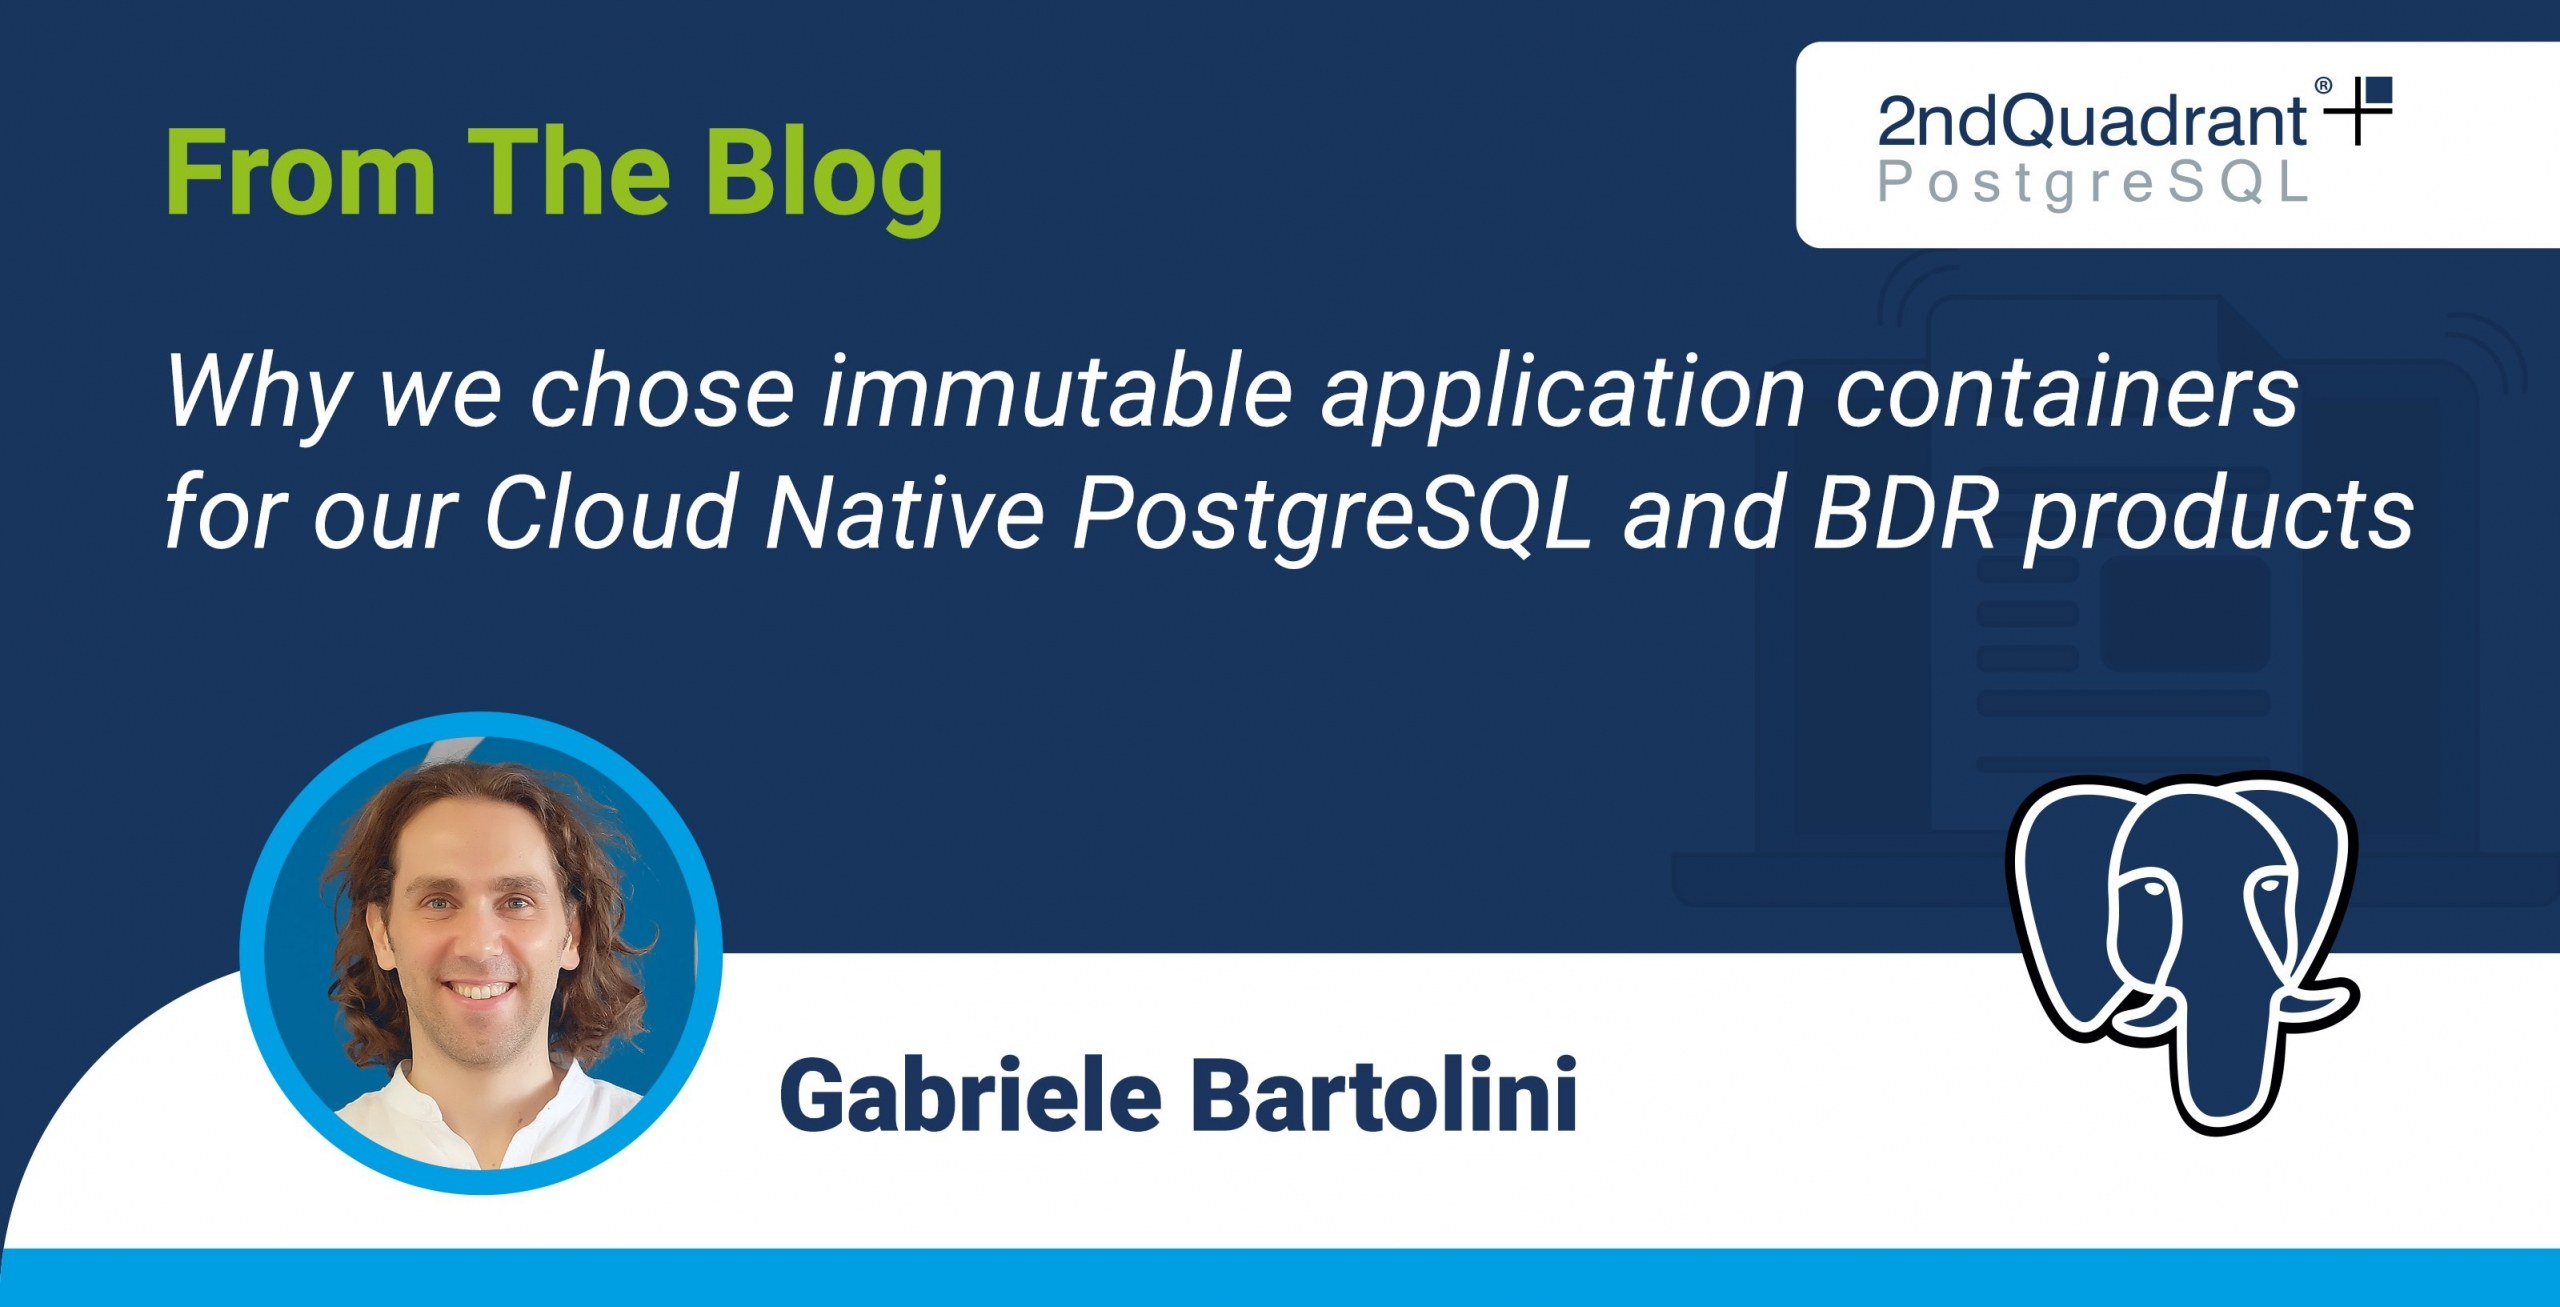 Why we chose immutable application containers for our Cloud Native PostgreSQL and BDR products